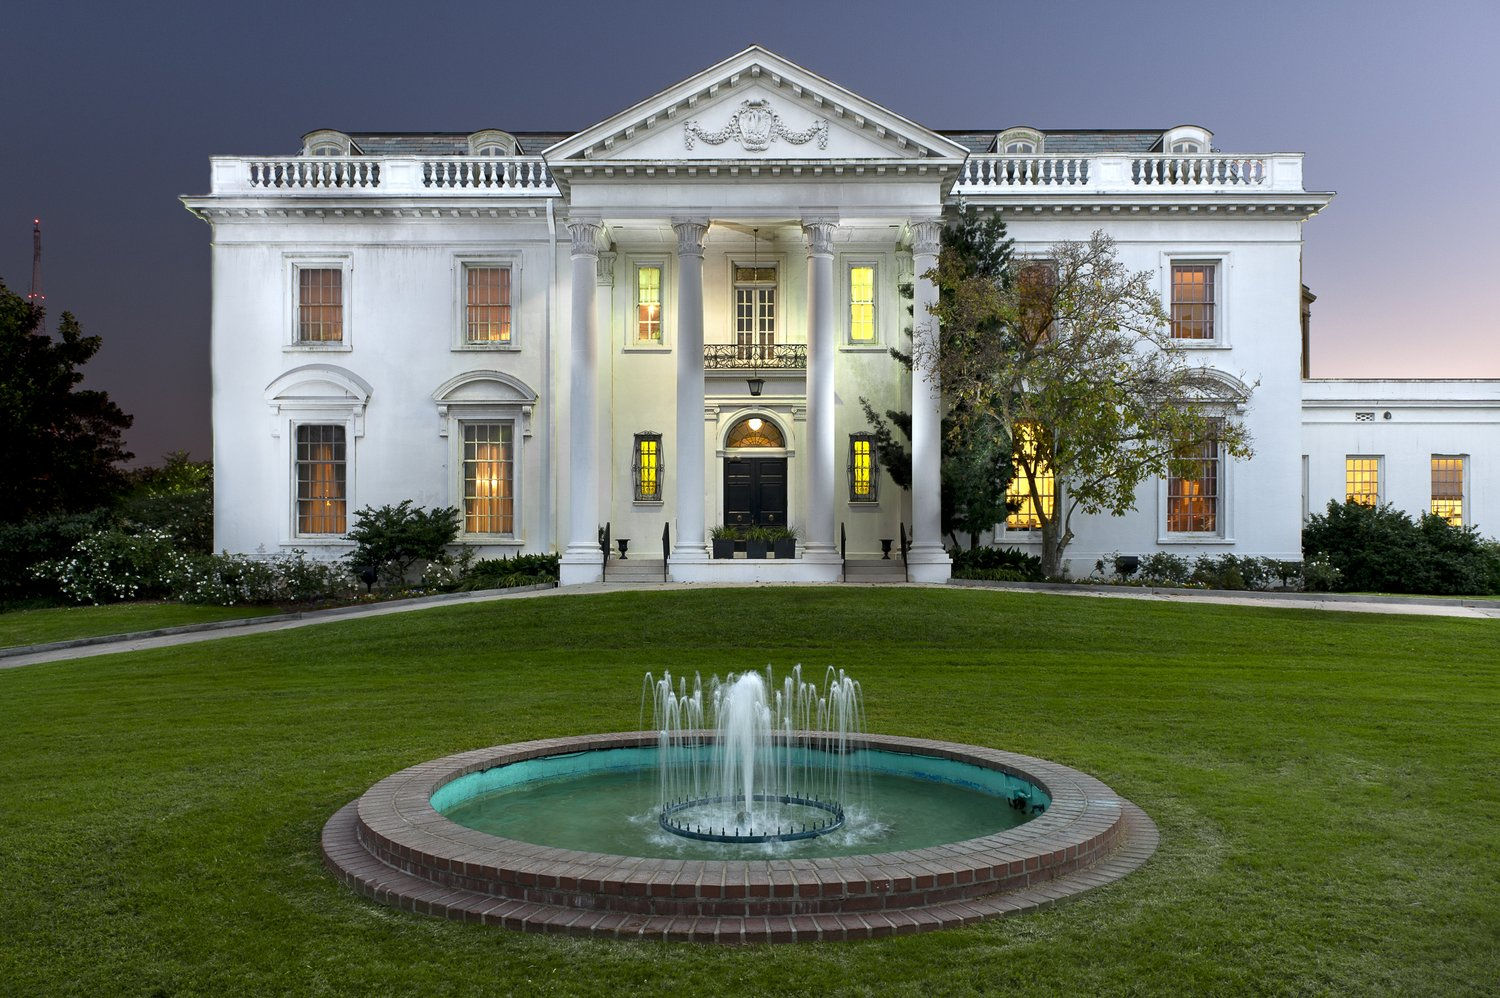 Rick hannon mansion photo jpg